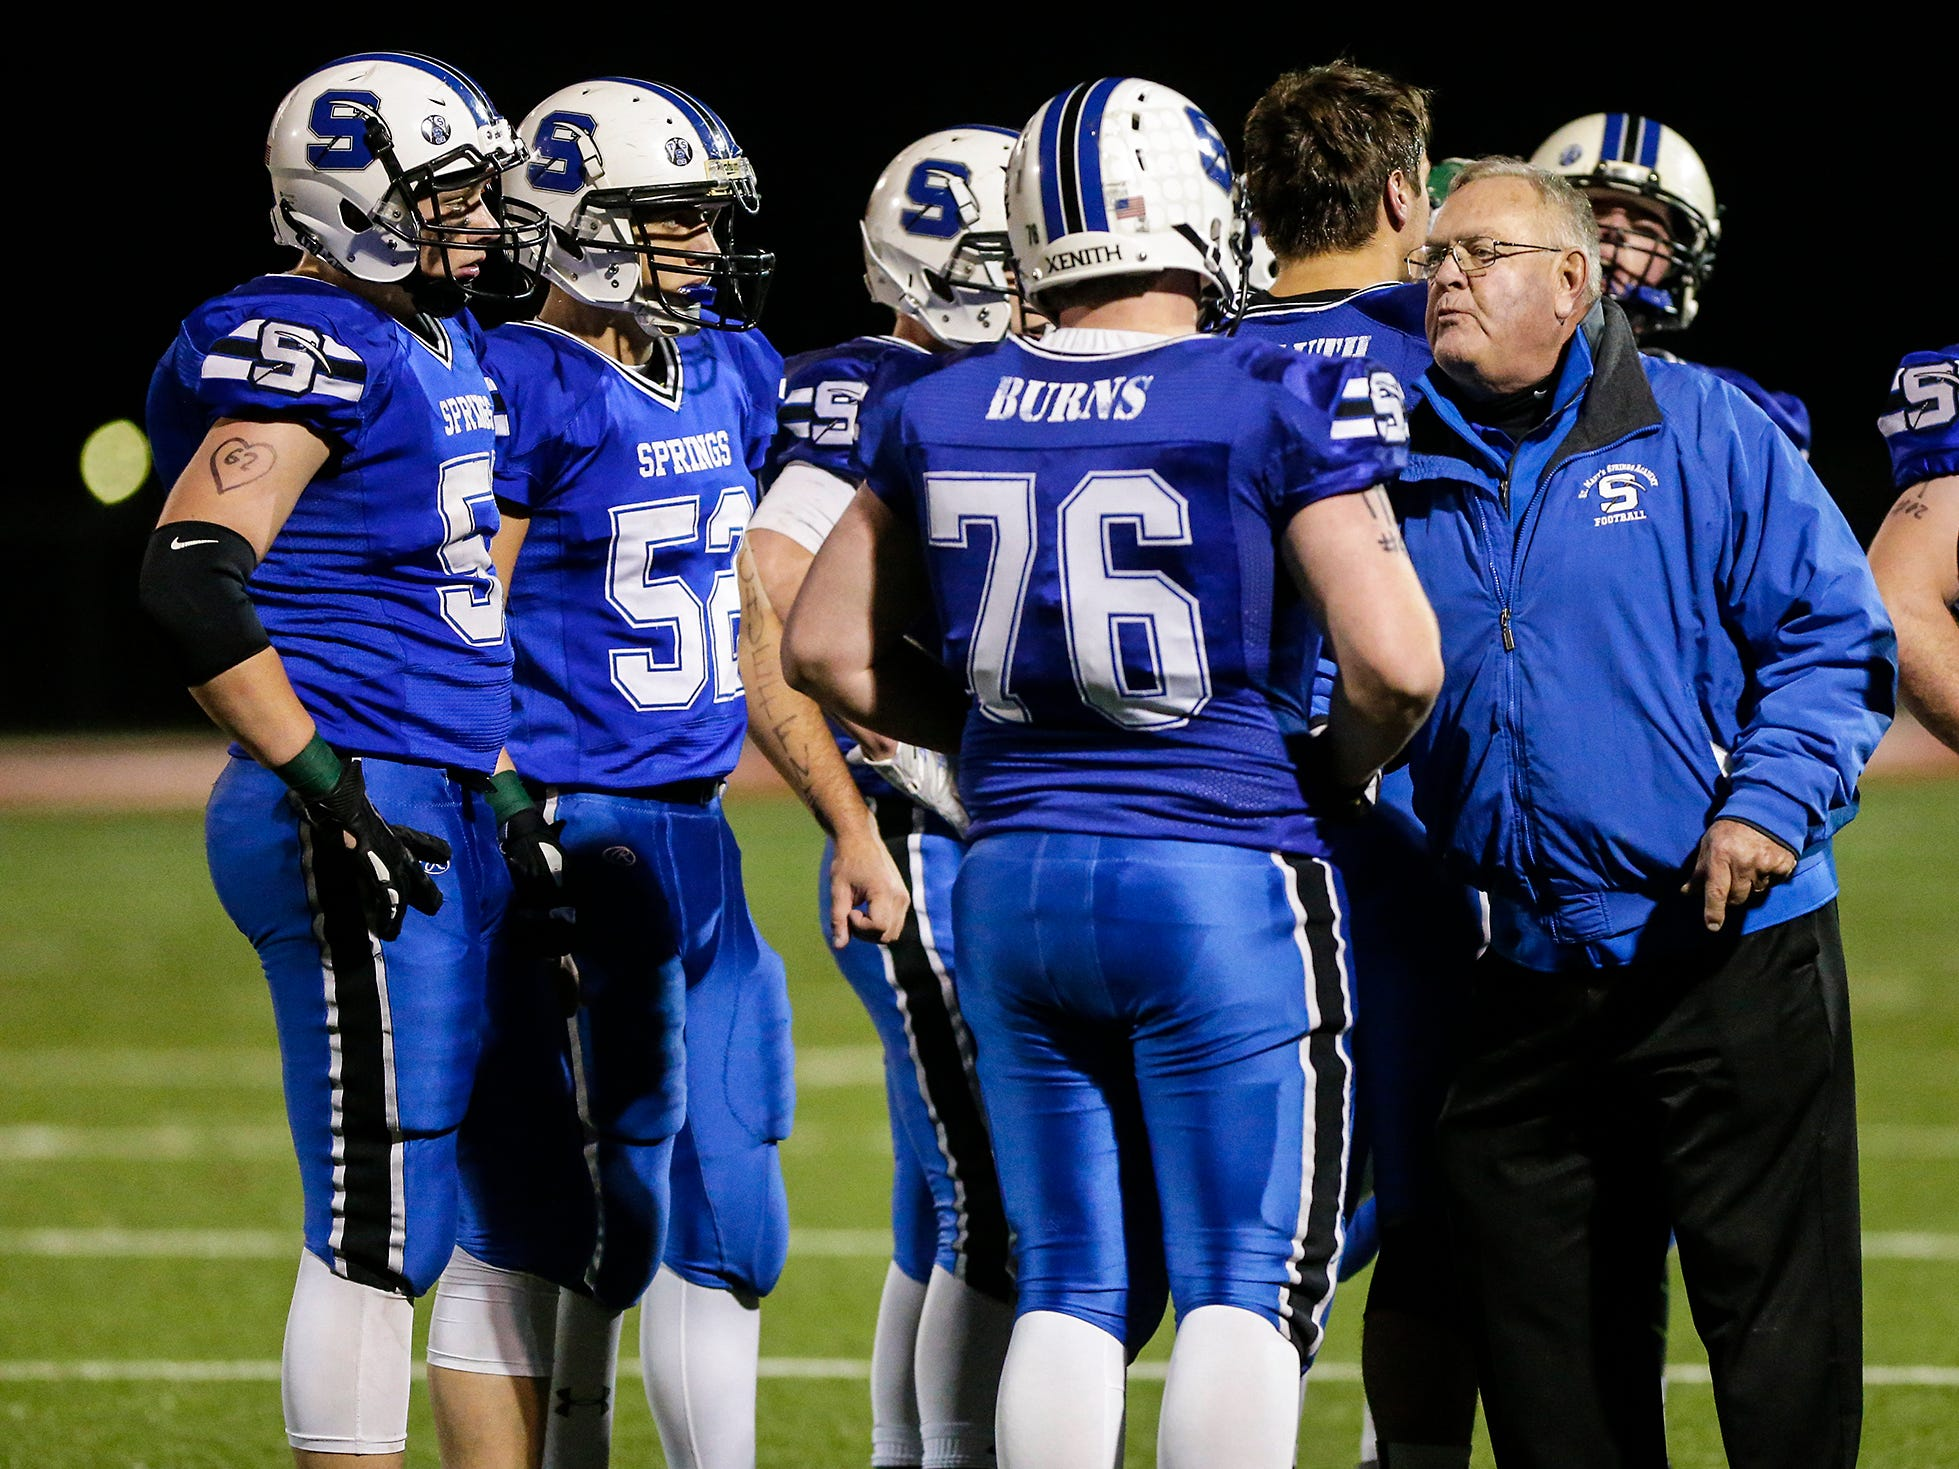 St. Mary's Springs Academy football head coach Bob Hyland talks with his players during a time out during their WIAA division five, level 2 playoff game against Omro High School Friday, October 26, 2018 played in Lomira, Wisconsin. Springs won the match-up 33-20. Doug Raflik/USA TODAY NETWORK-Wisconsin